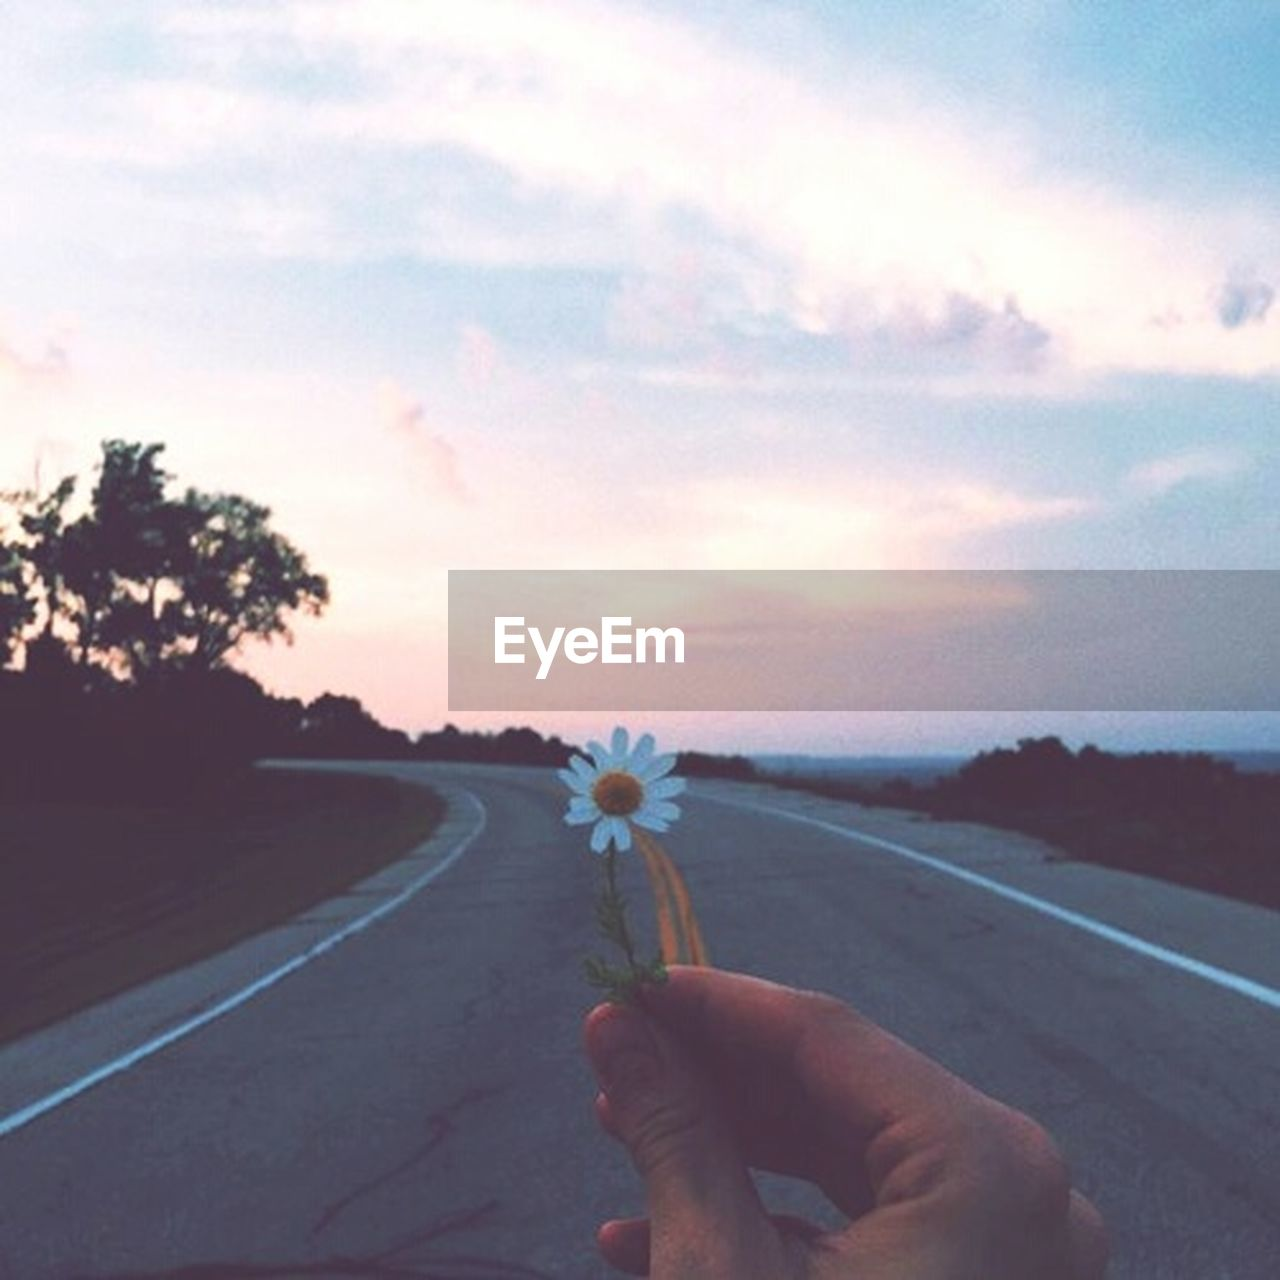 human hand, road, human body part, one person, sky, transportation, sunset, holding, cloud - sky, outdoors, the way forward, flower, real people, nature, tree, men, one man only, close-up, day, adult, people, only men, adults only